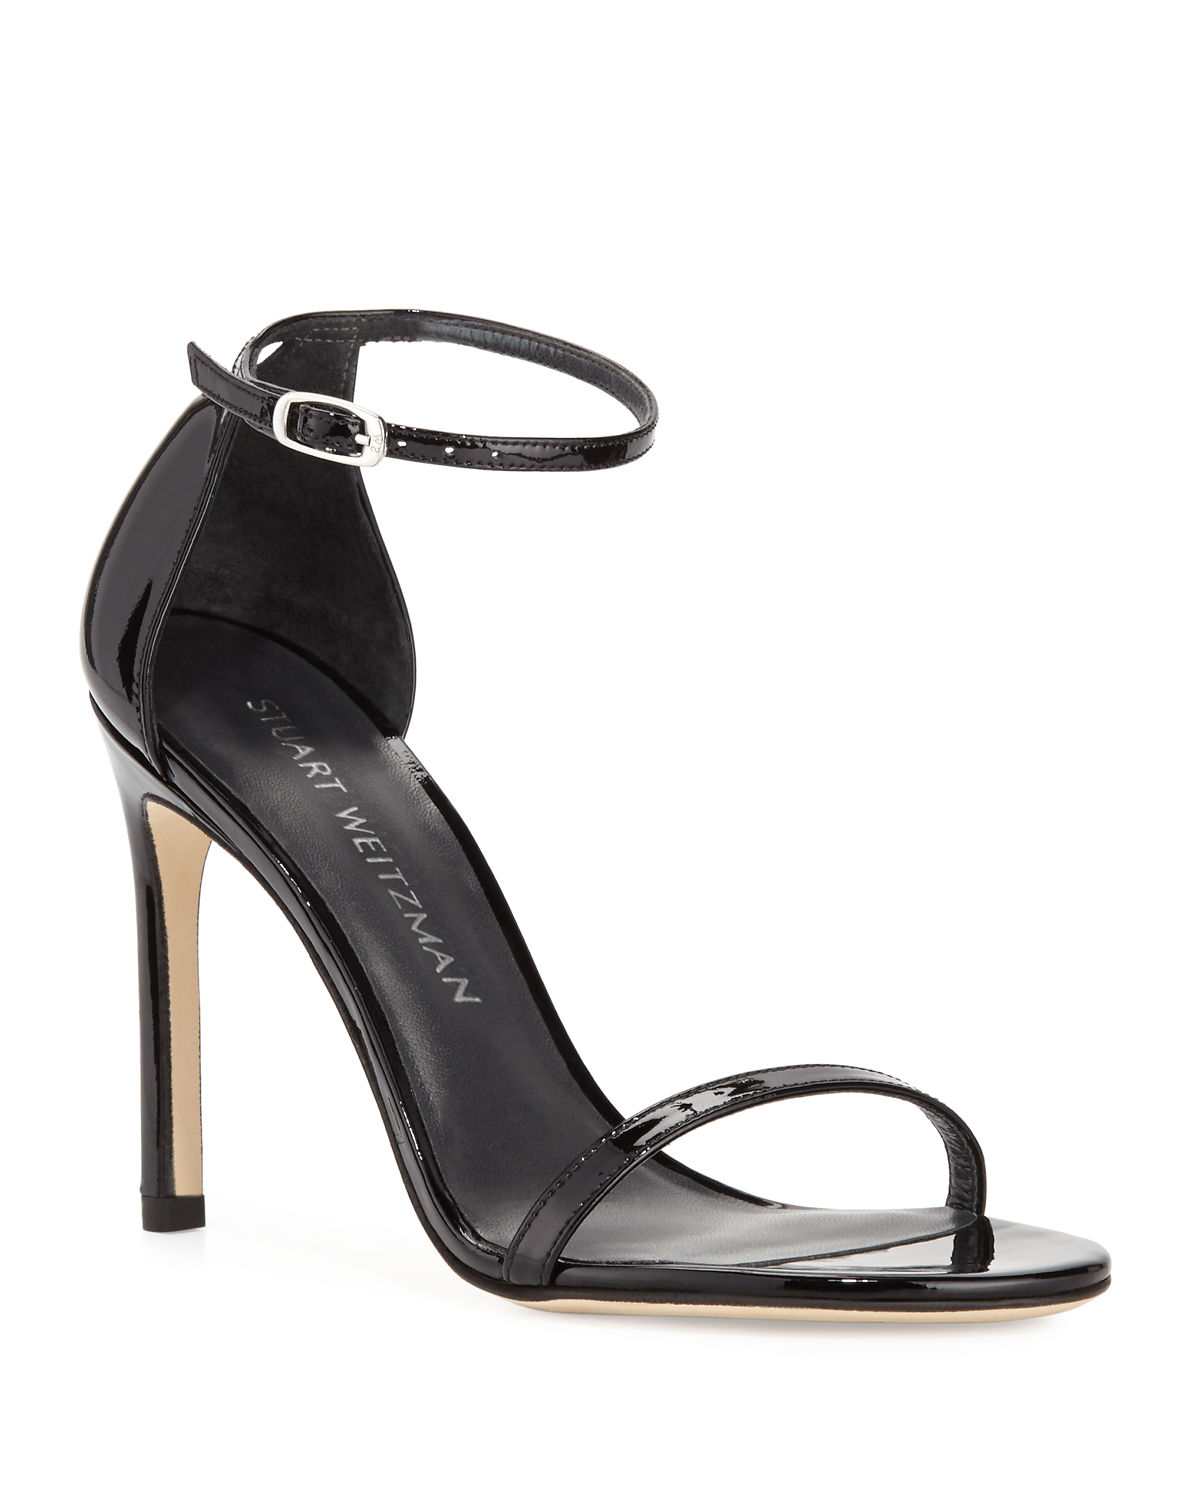 Stuart Weitzman Sandals NUDISTSONG PATENT ANKLE-WRAP SANDALS